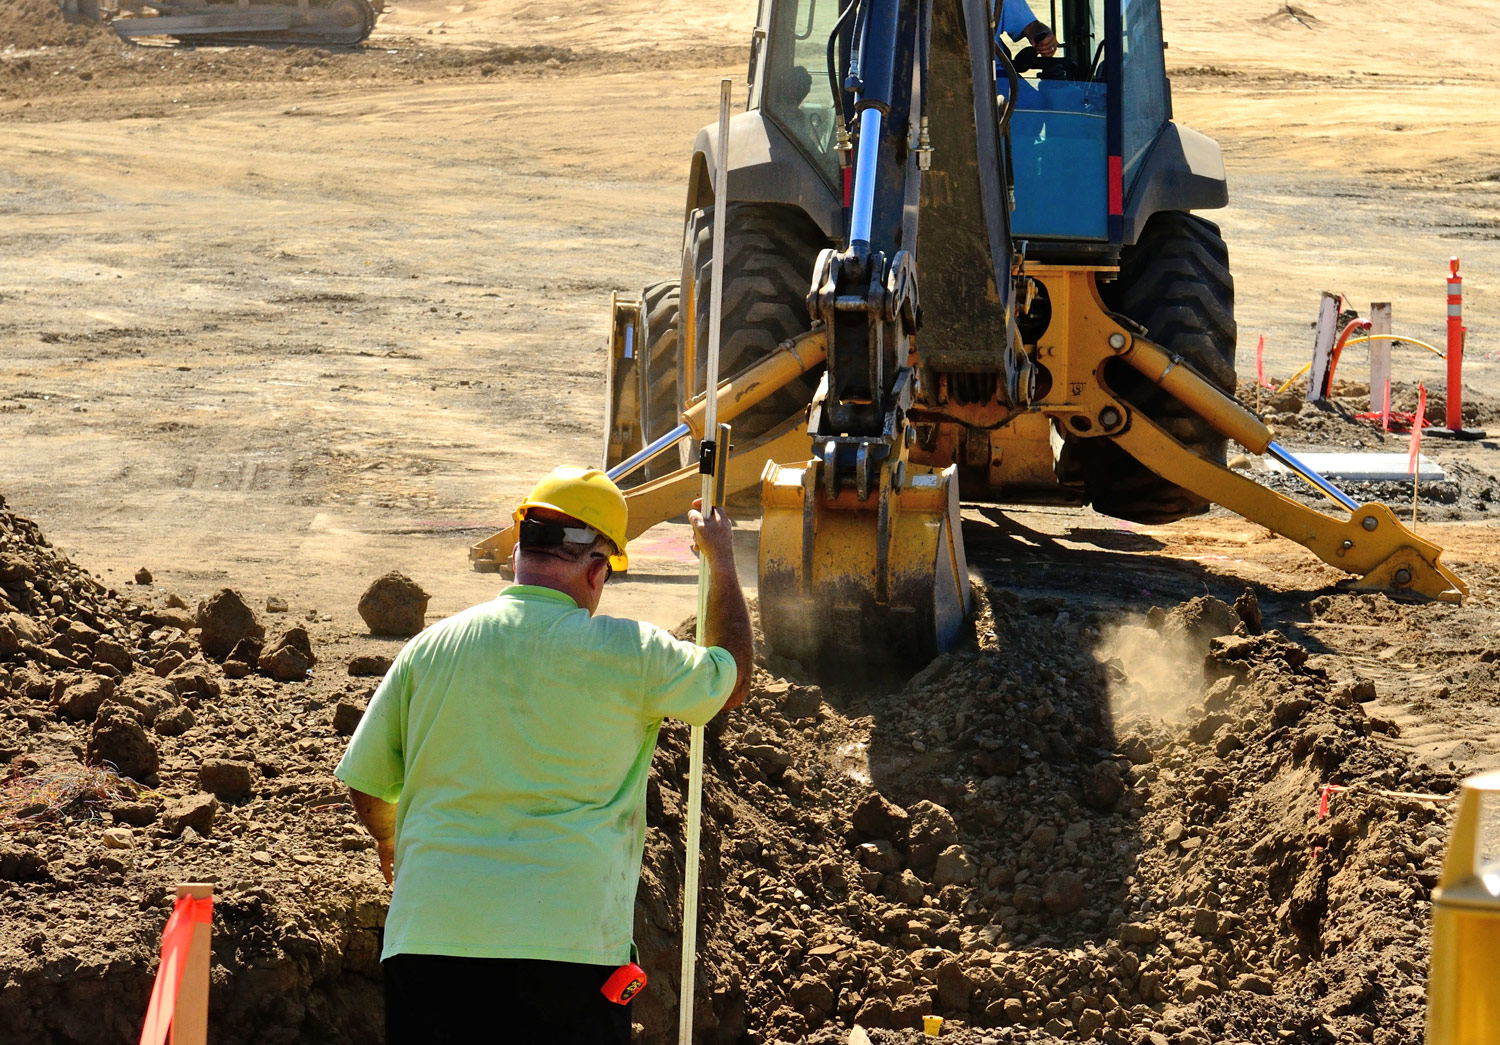 Troubleshooting a backhoe incident